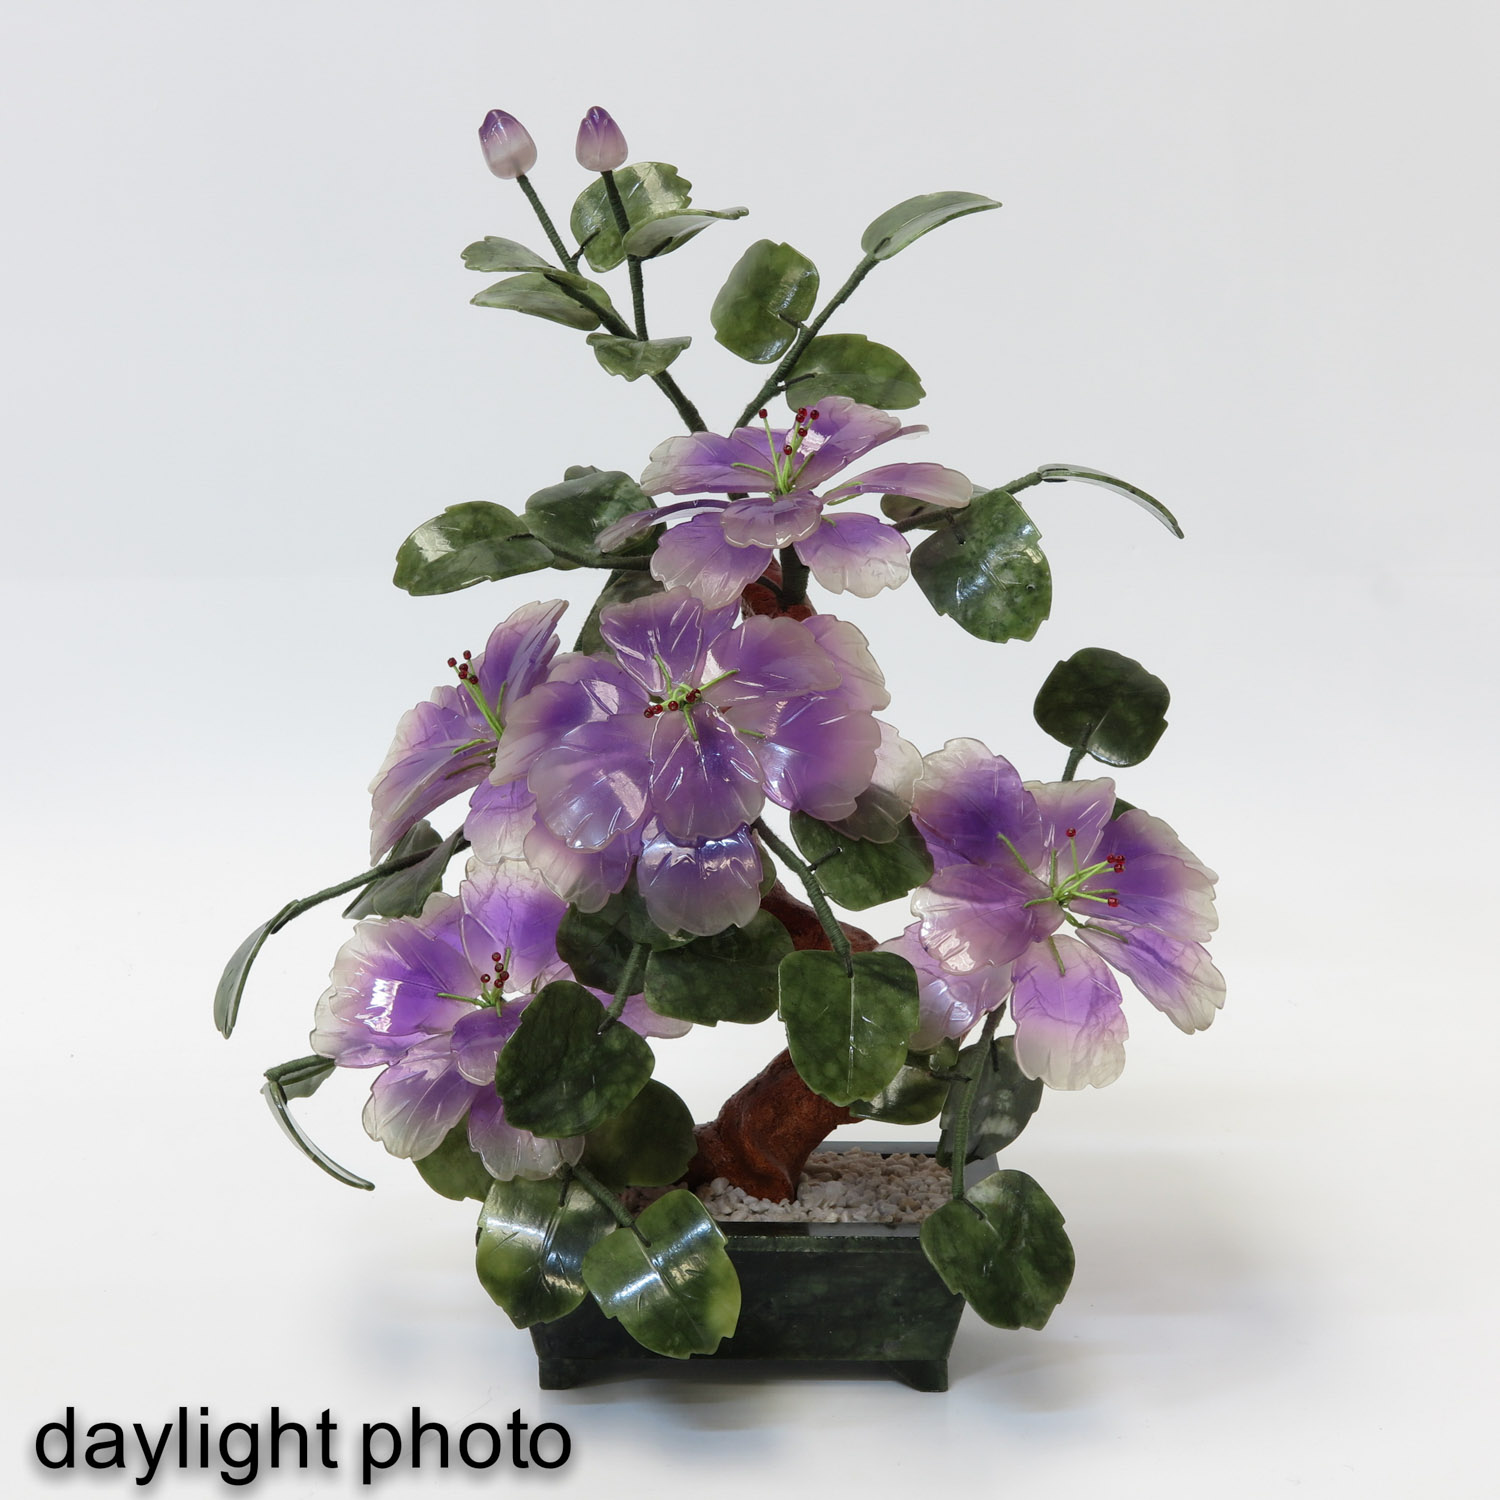 A Collection of Floral Arrangements - Image 8 of 10